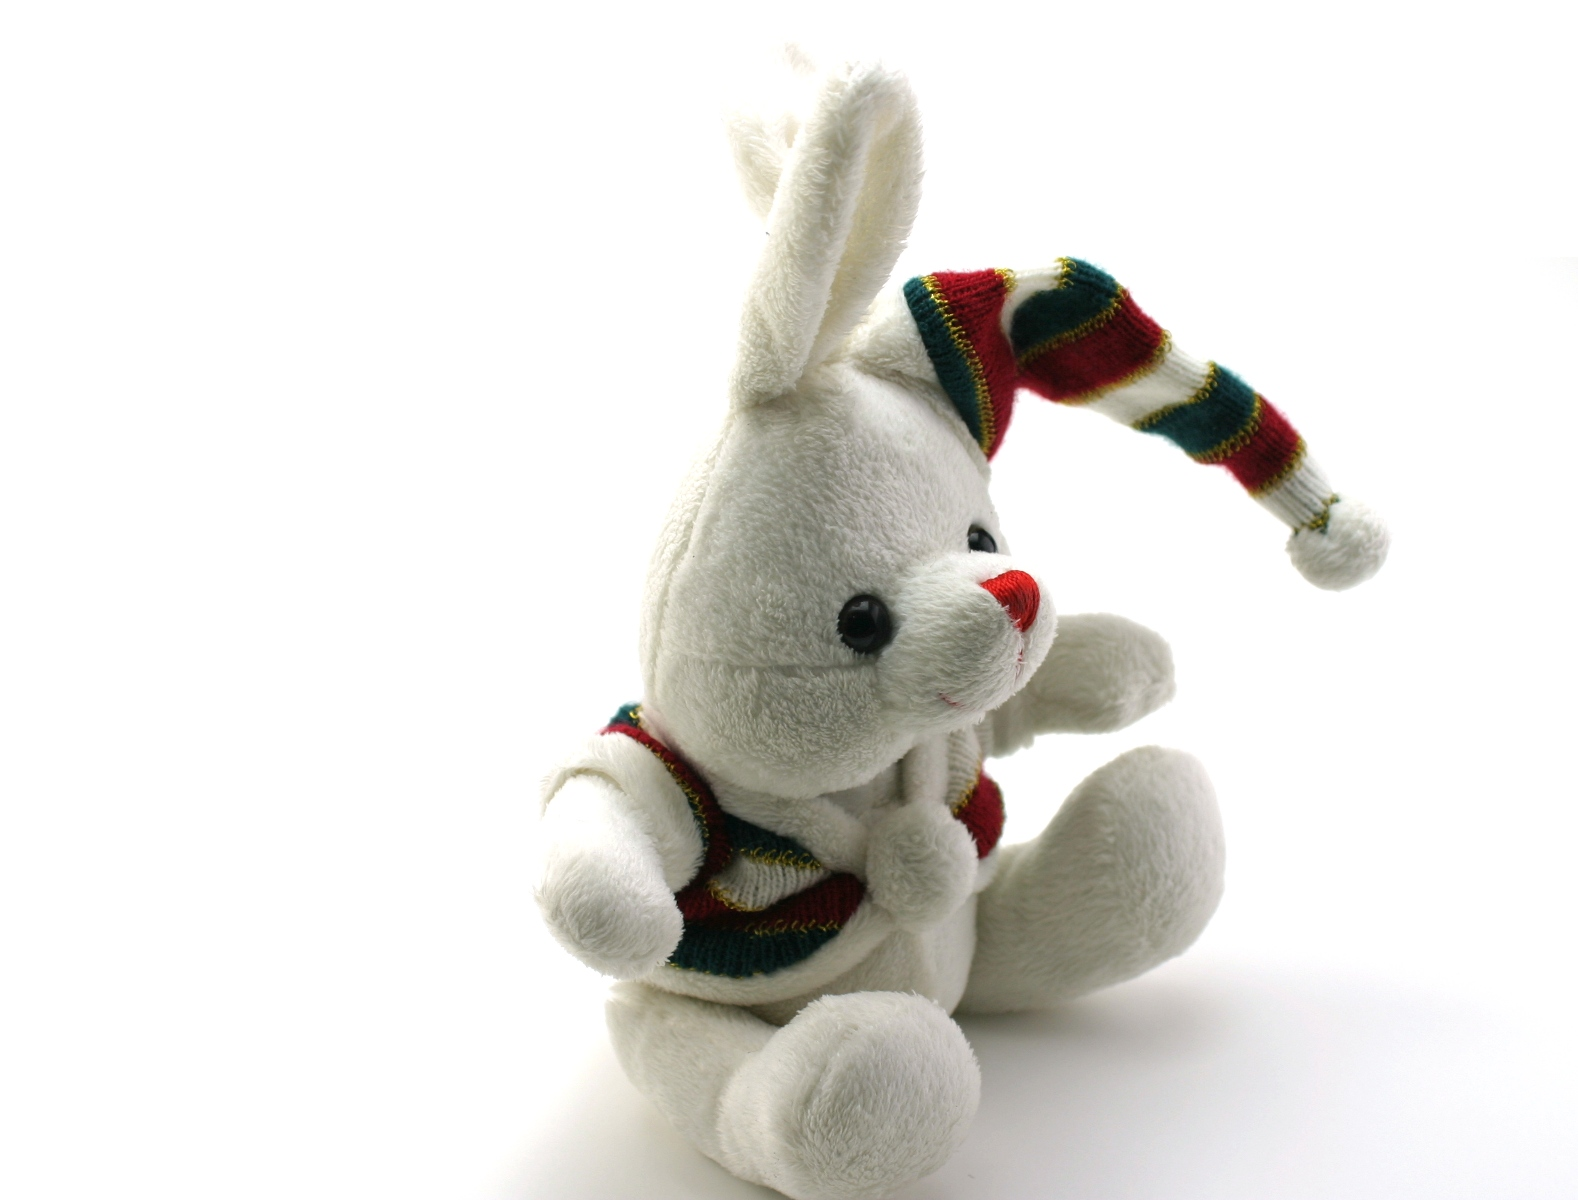 Adorable generic stuffed bunny photo